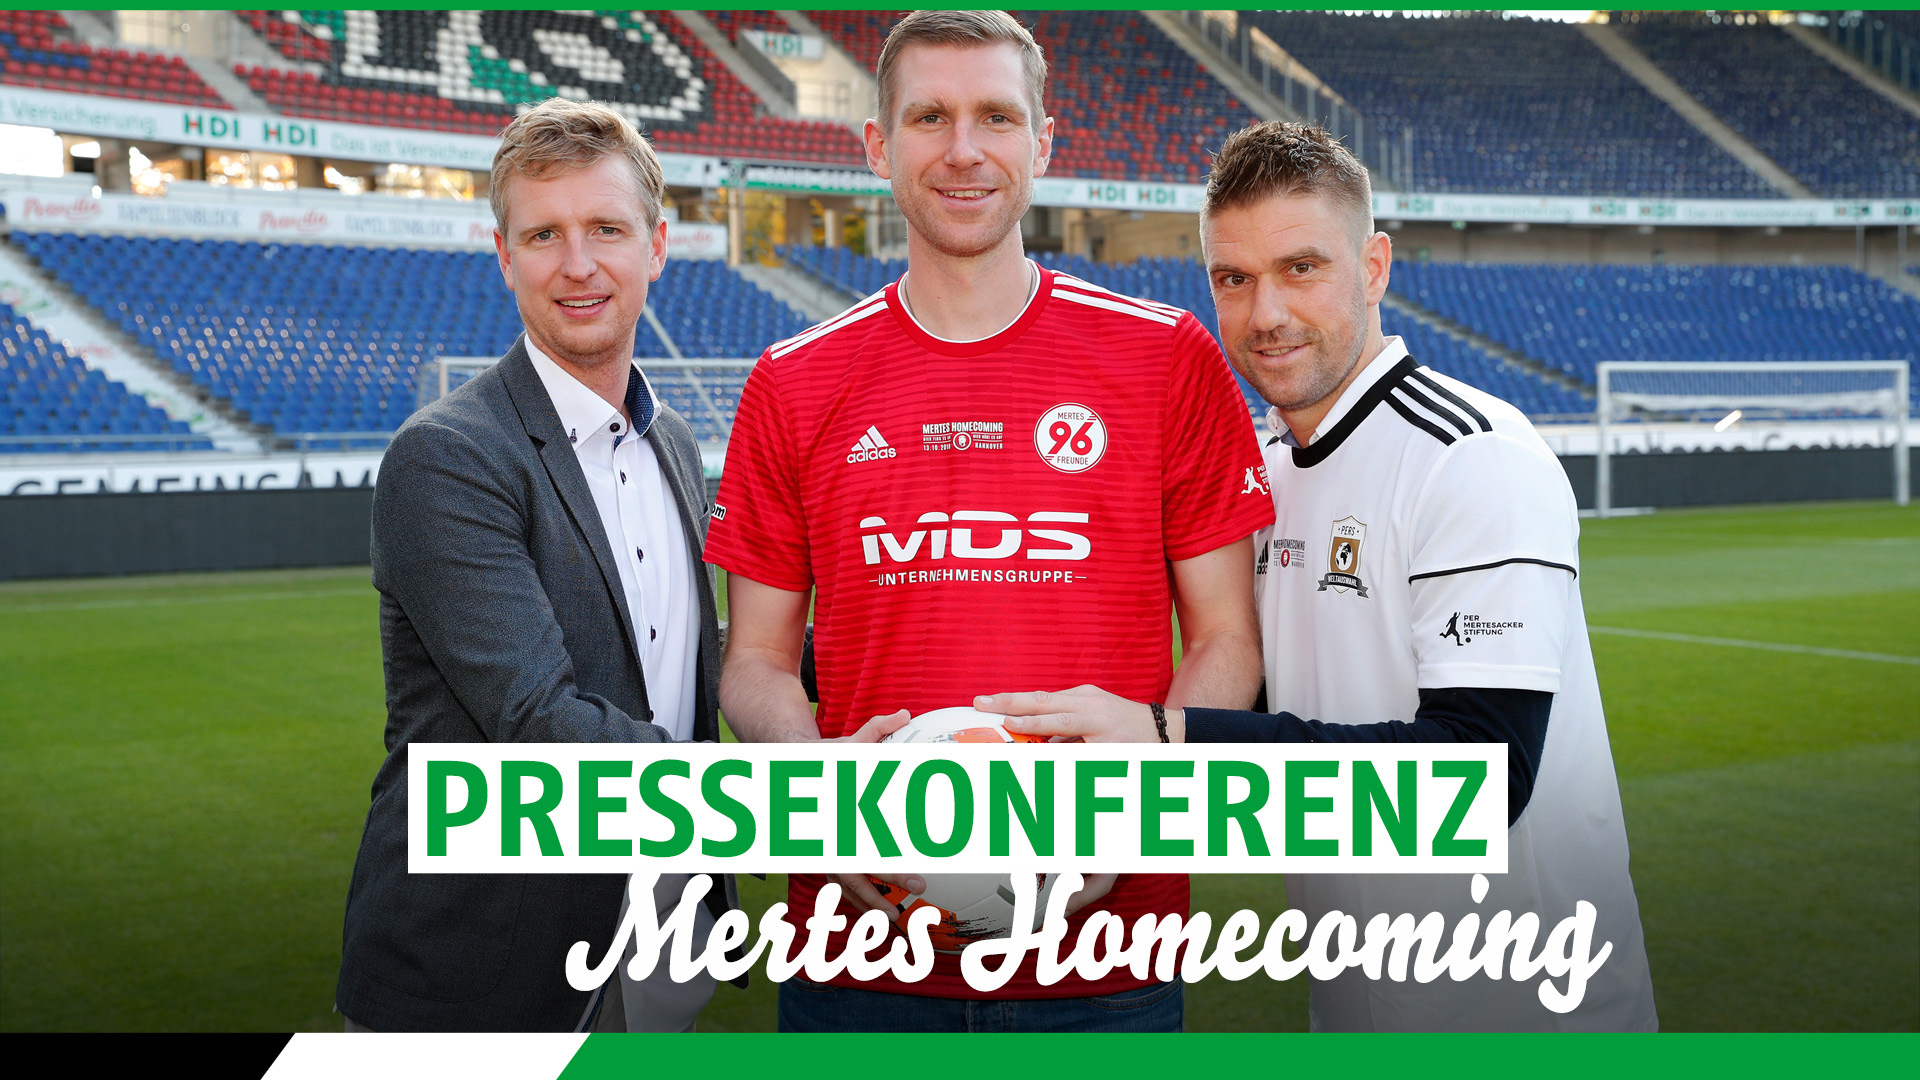 hannover 96 mertes homecoming stolz meine karriere in hannover zu beenden. Black Bedroom Furniture Sets. Home Design Ideas